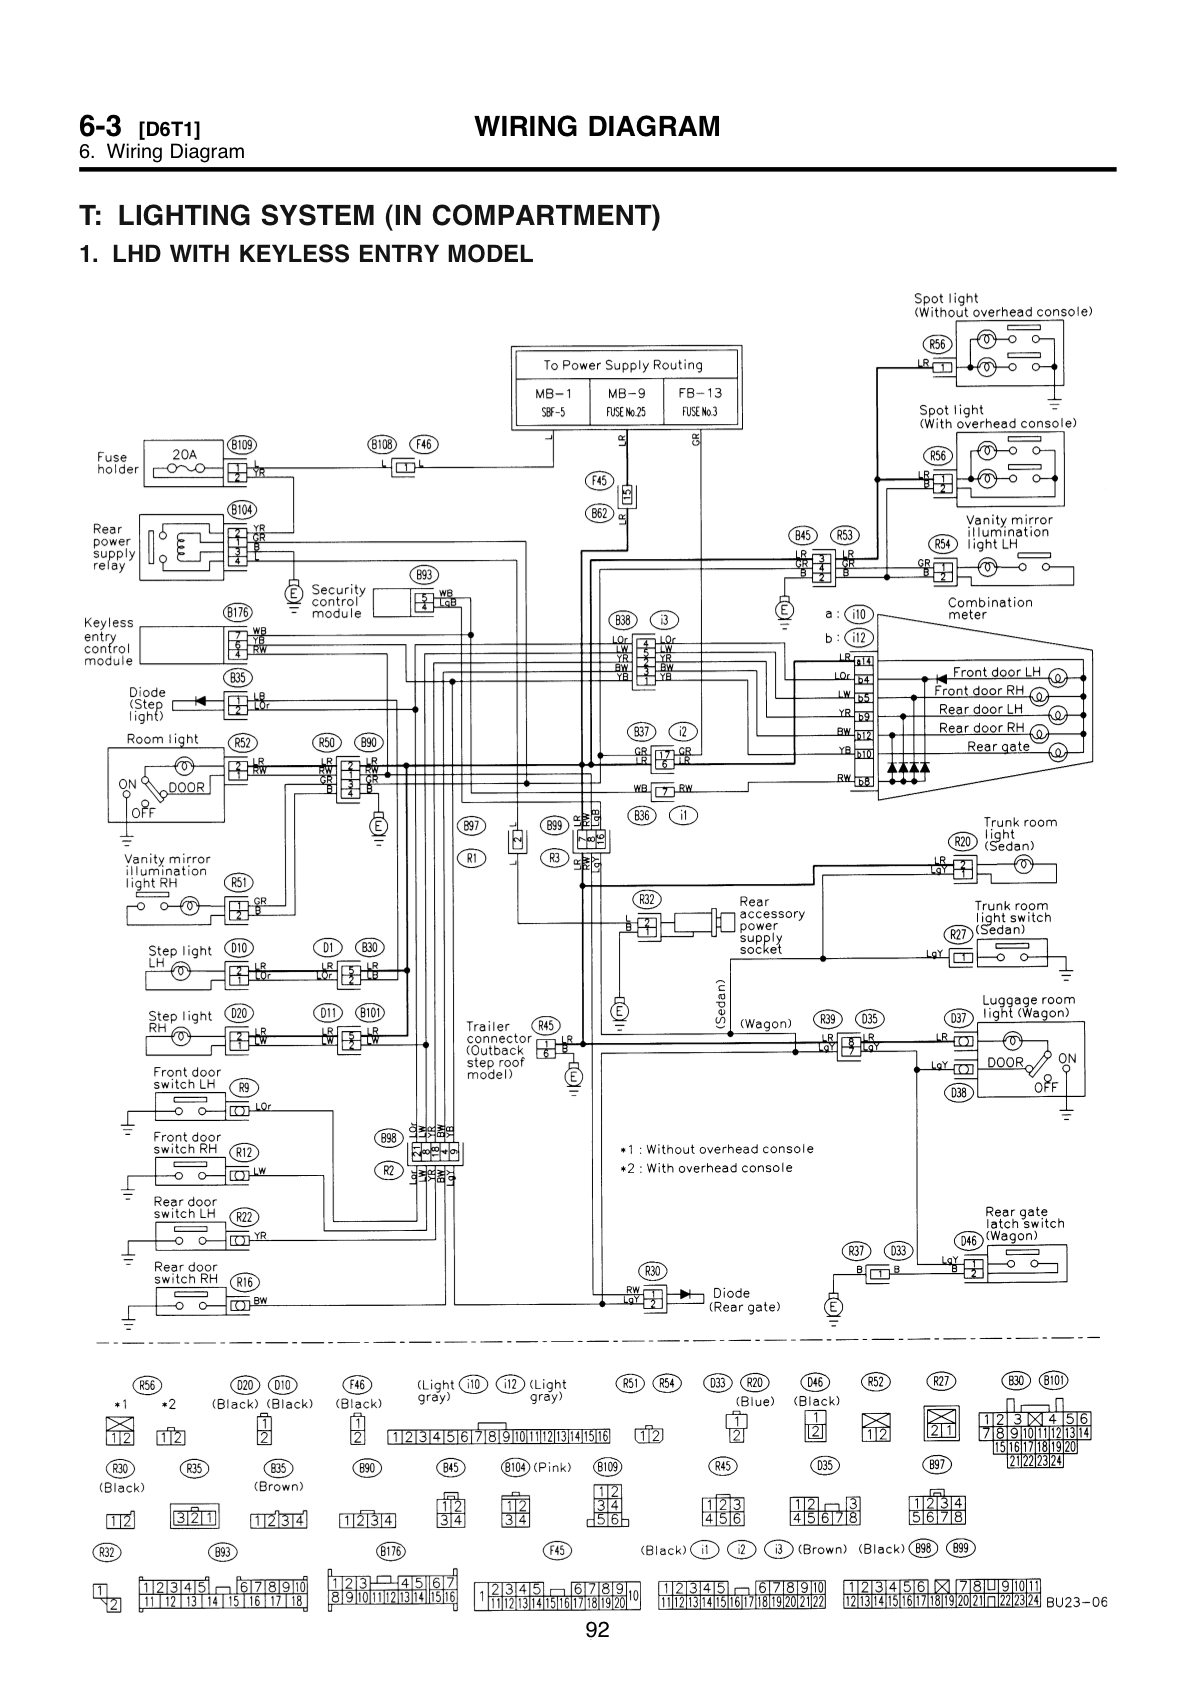 wiring_diagram1?resize\=840%2C1187 diagrams 554363 kramer single humbucker wiring diagram kramer kramer pacer wiring diagram at mifinder.co